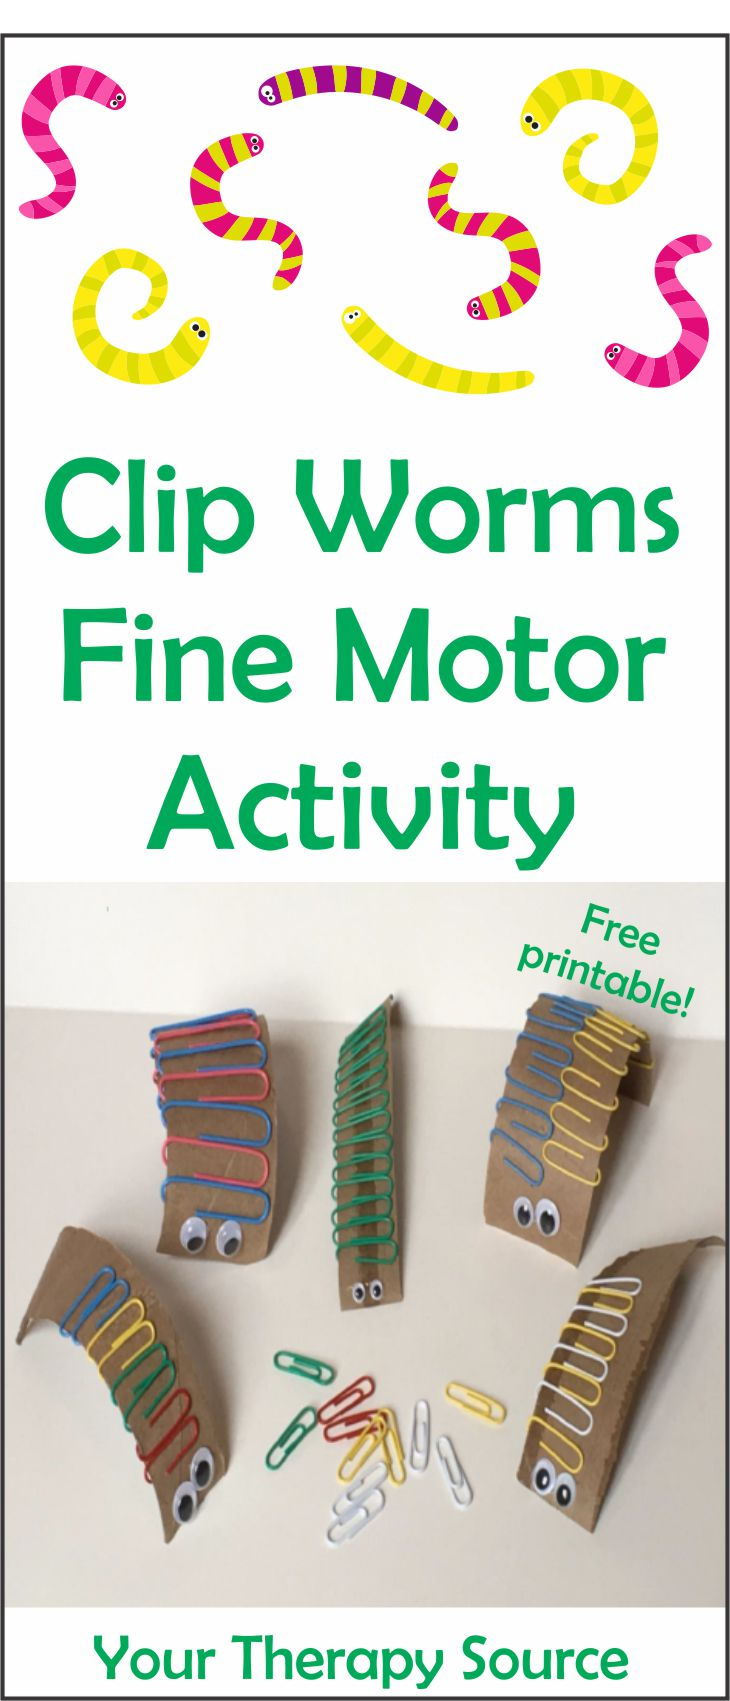 The clip worm fine motor activity is a simple and economical challenge for little fingers and hands.  To start, dig through your recycle bin and grab some cardboard!  You can download a FREE hand out of this activity at the bottom of the post.